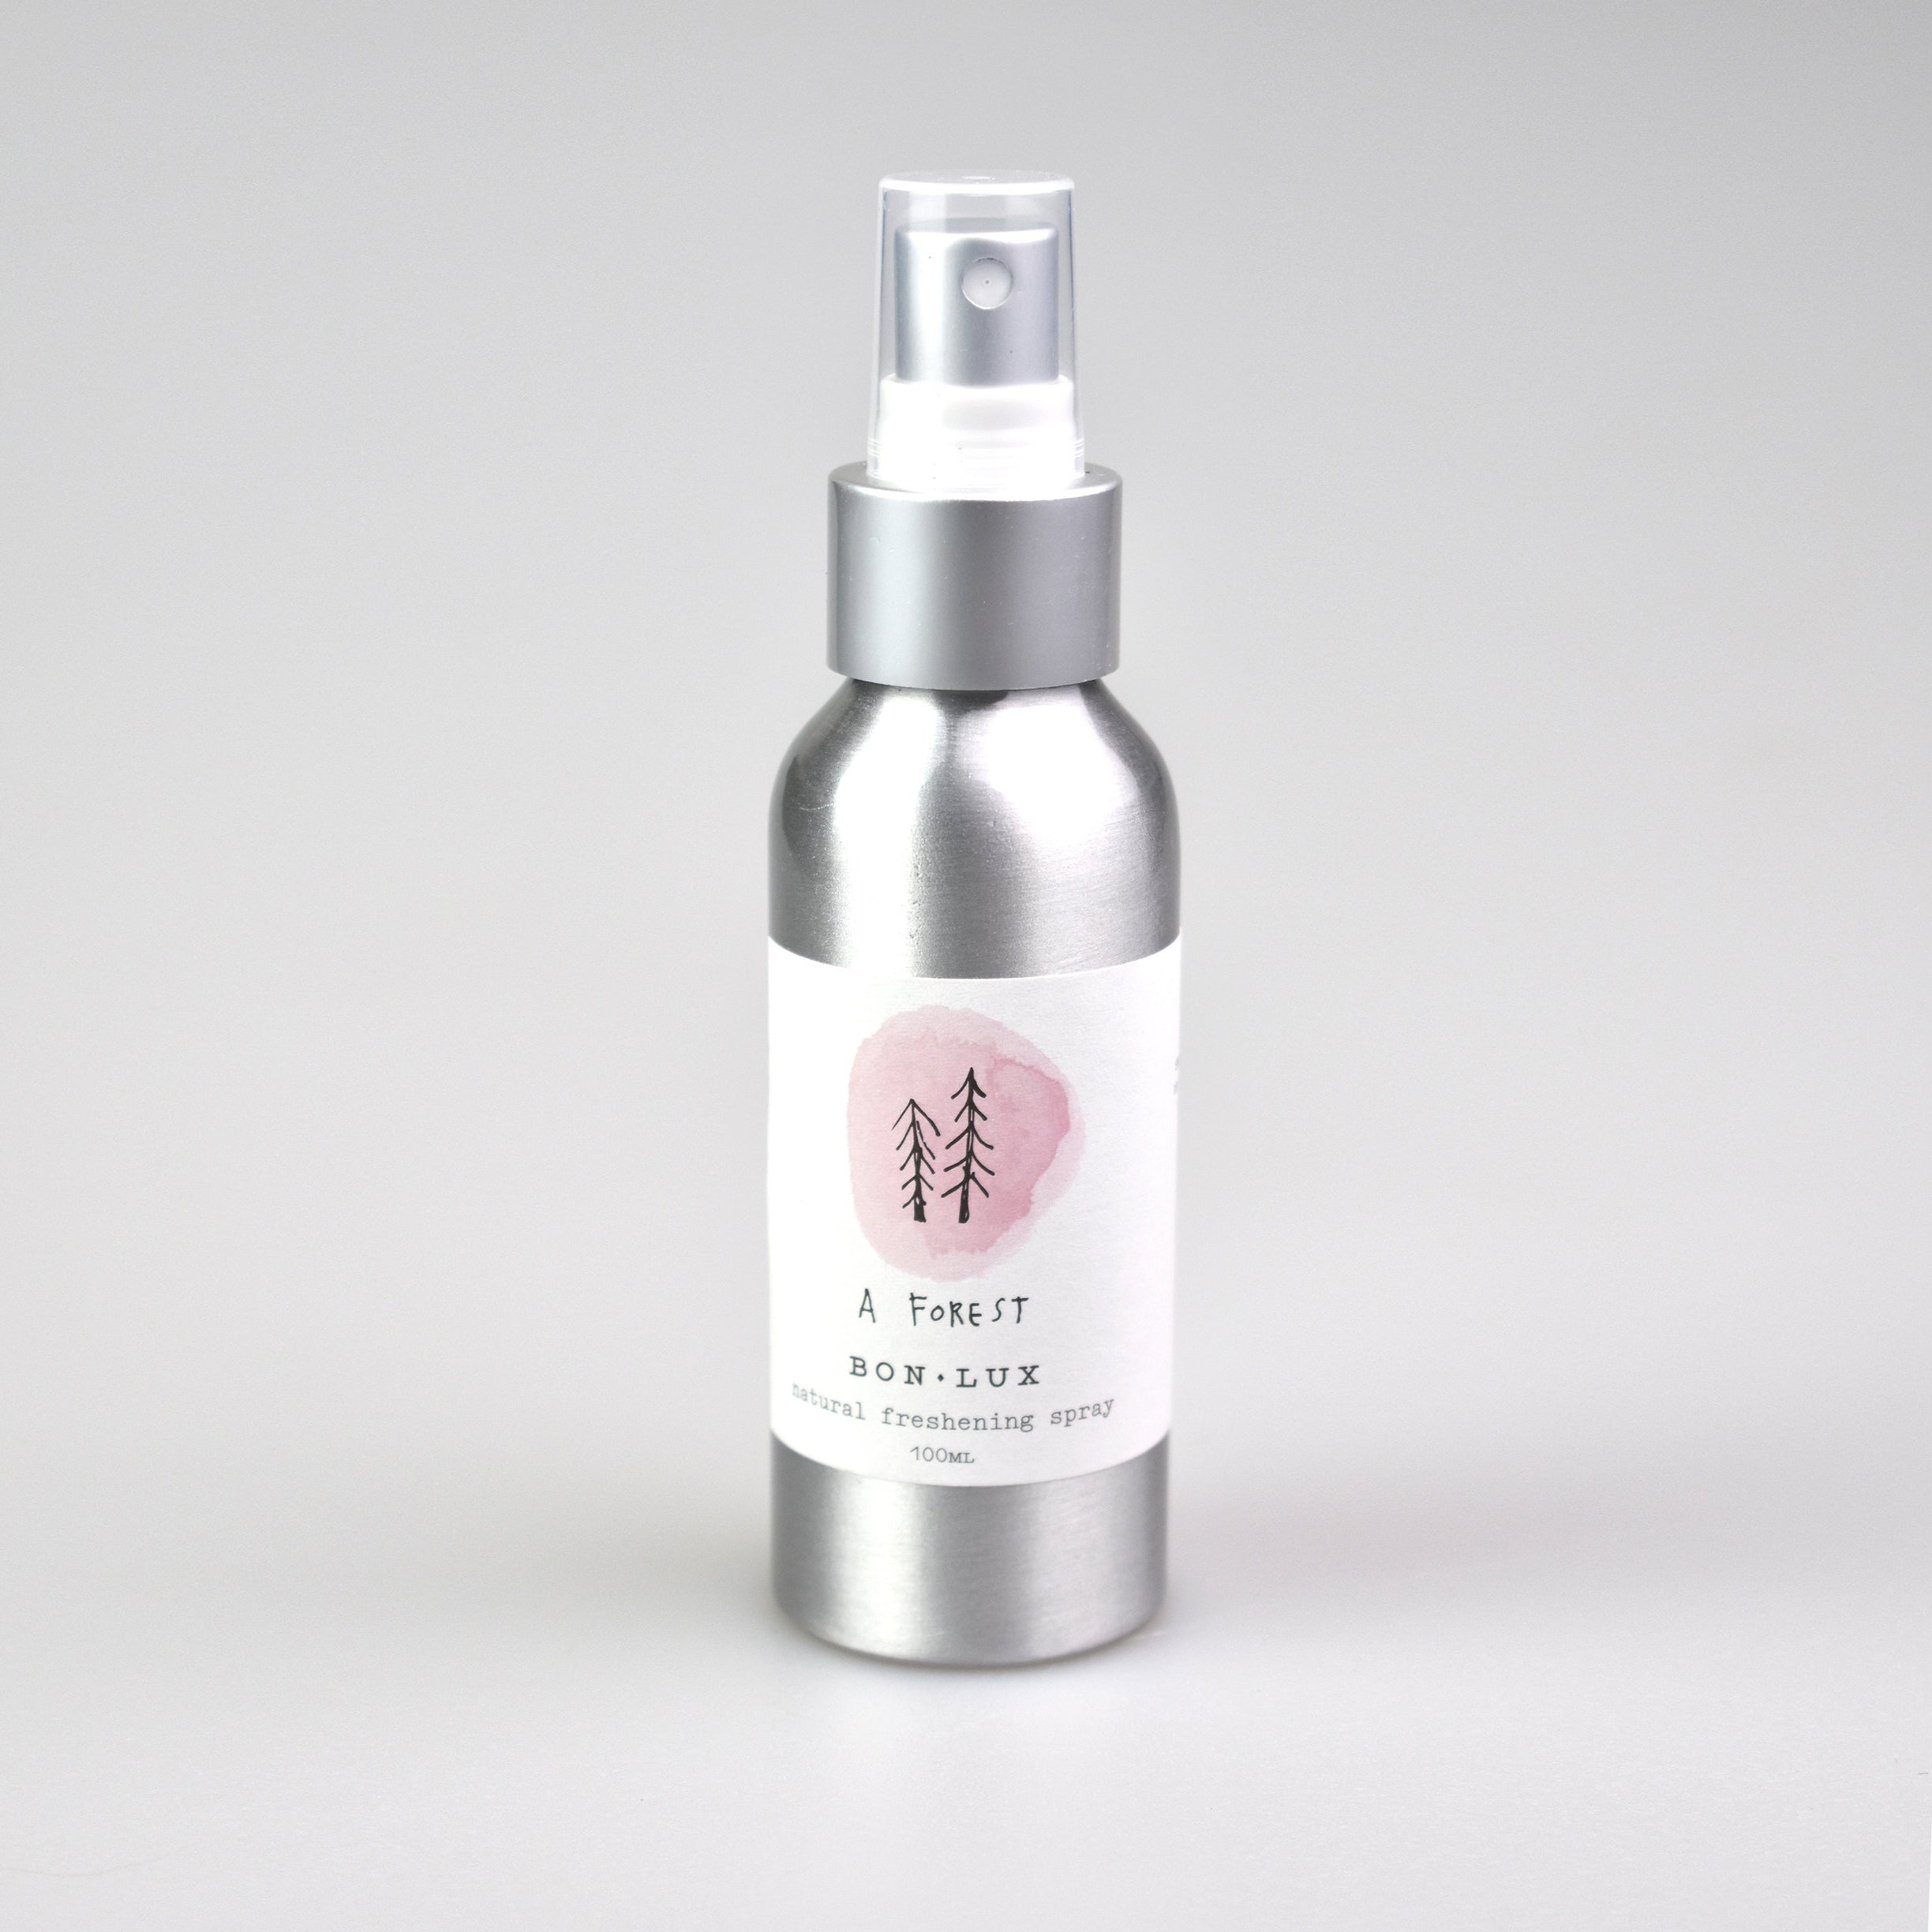 Freshening Spray in 'A Forest' - BON LUX